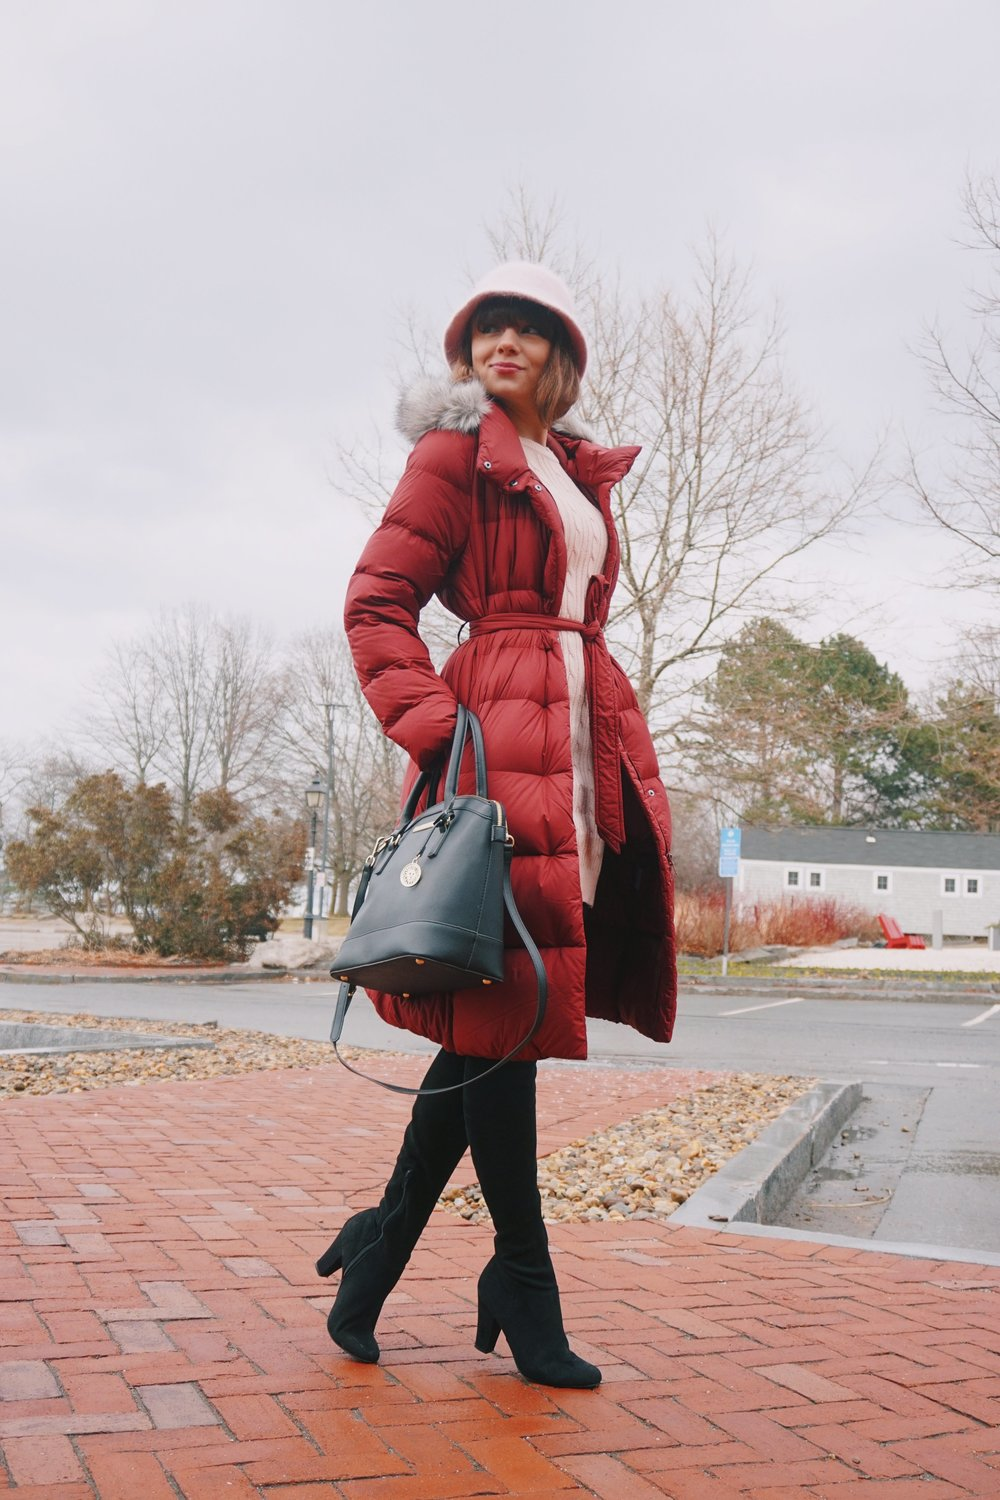 Winter outfit inspiration: craberry winter coat, black boots, black bag, and pink hat.